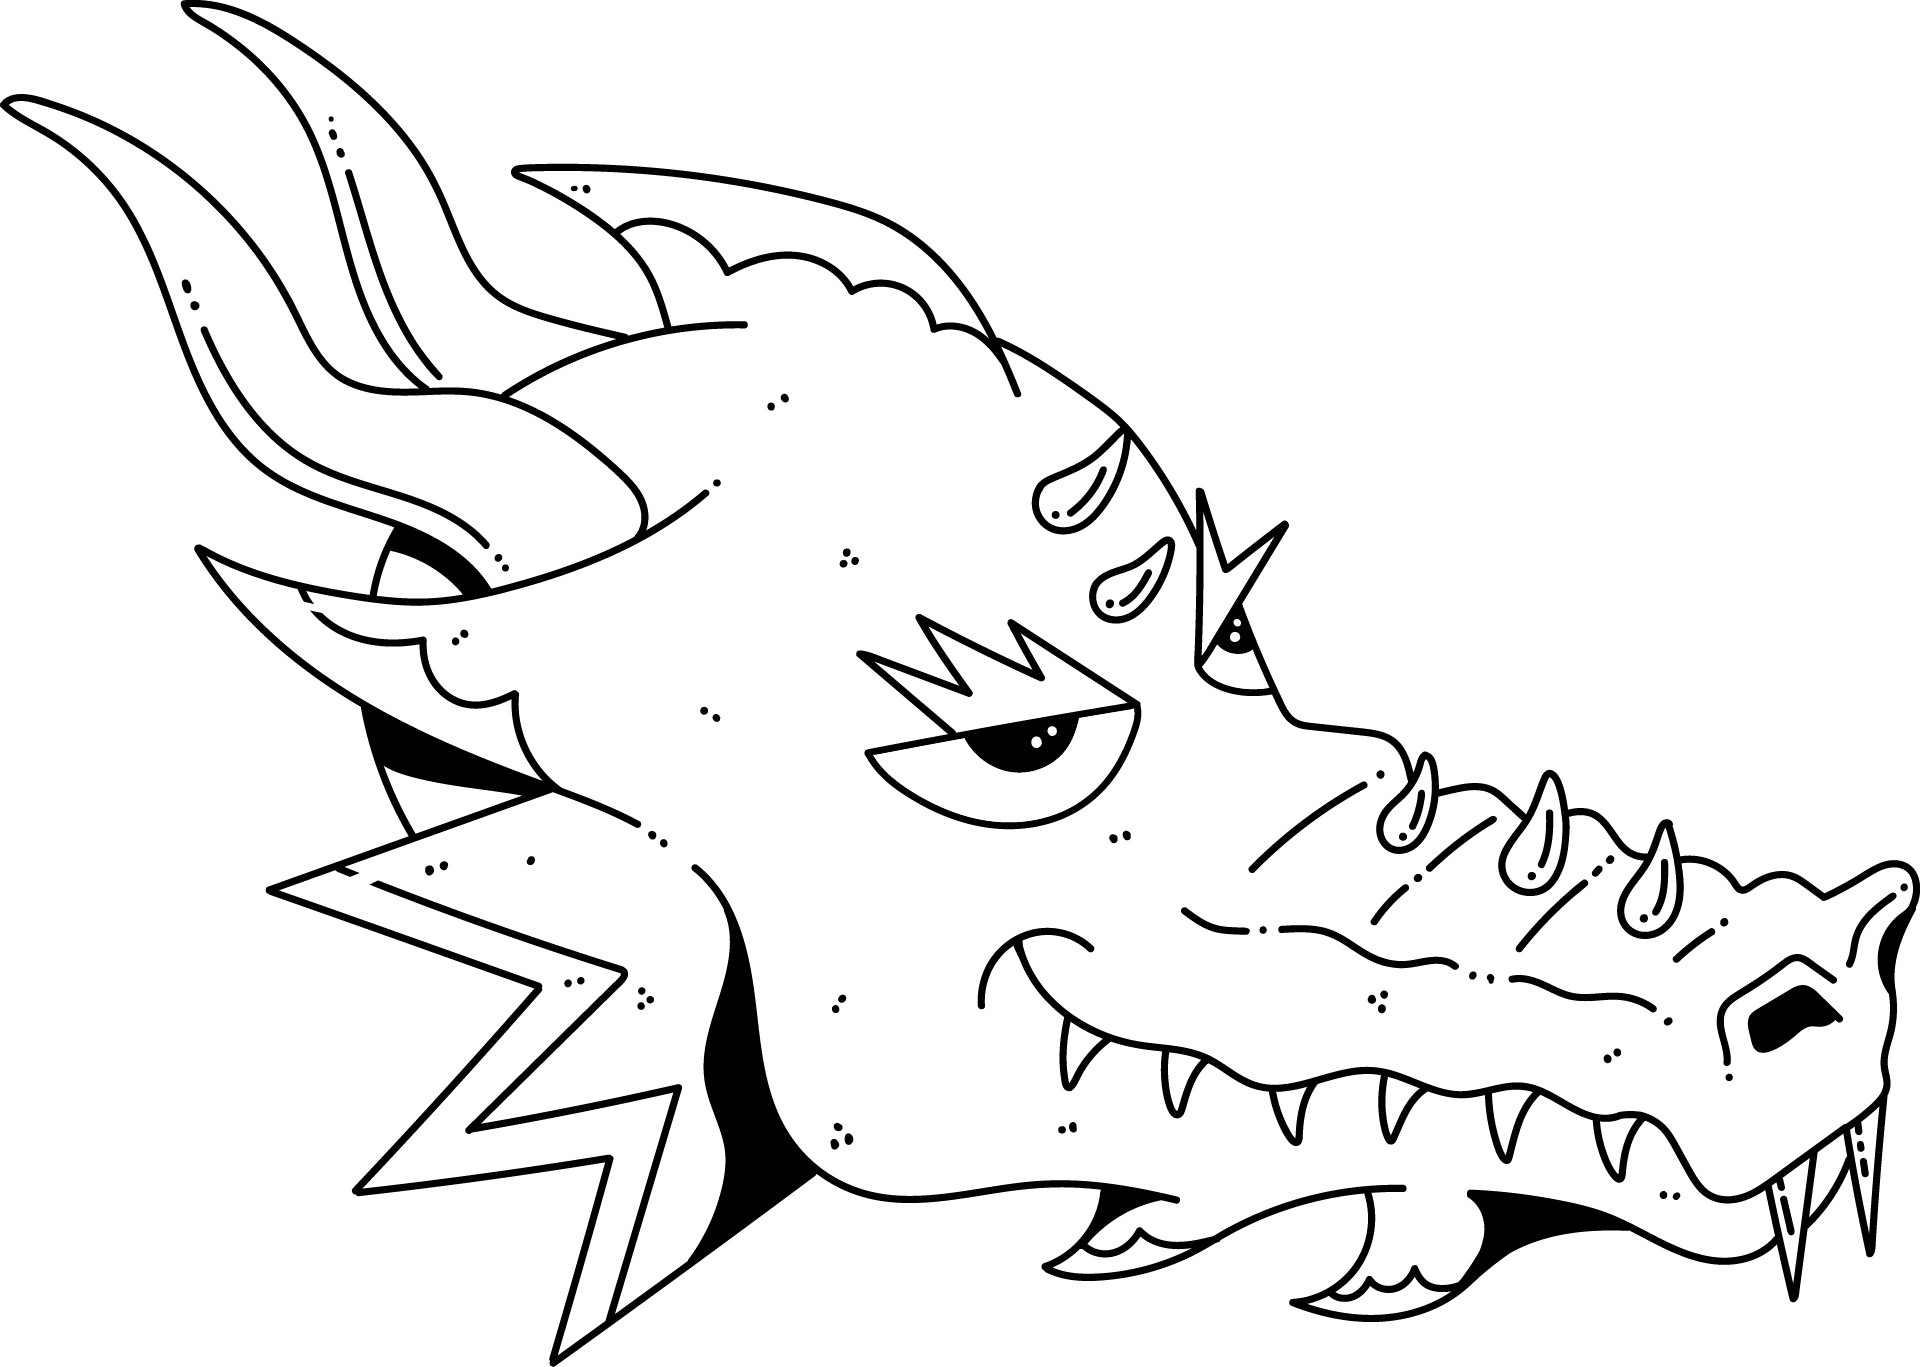 An illustration of our brand's Dragon